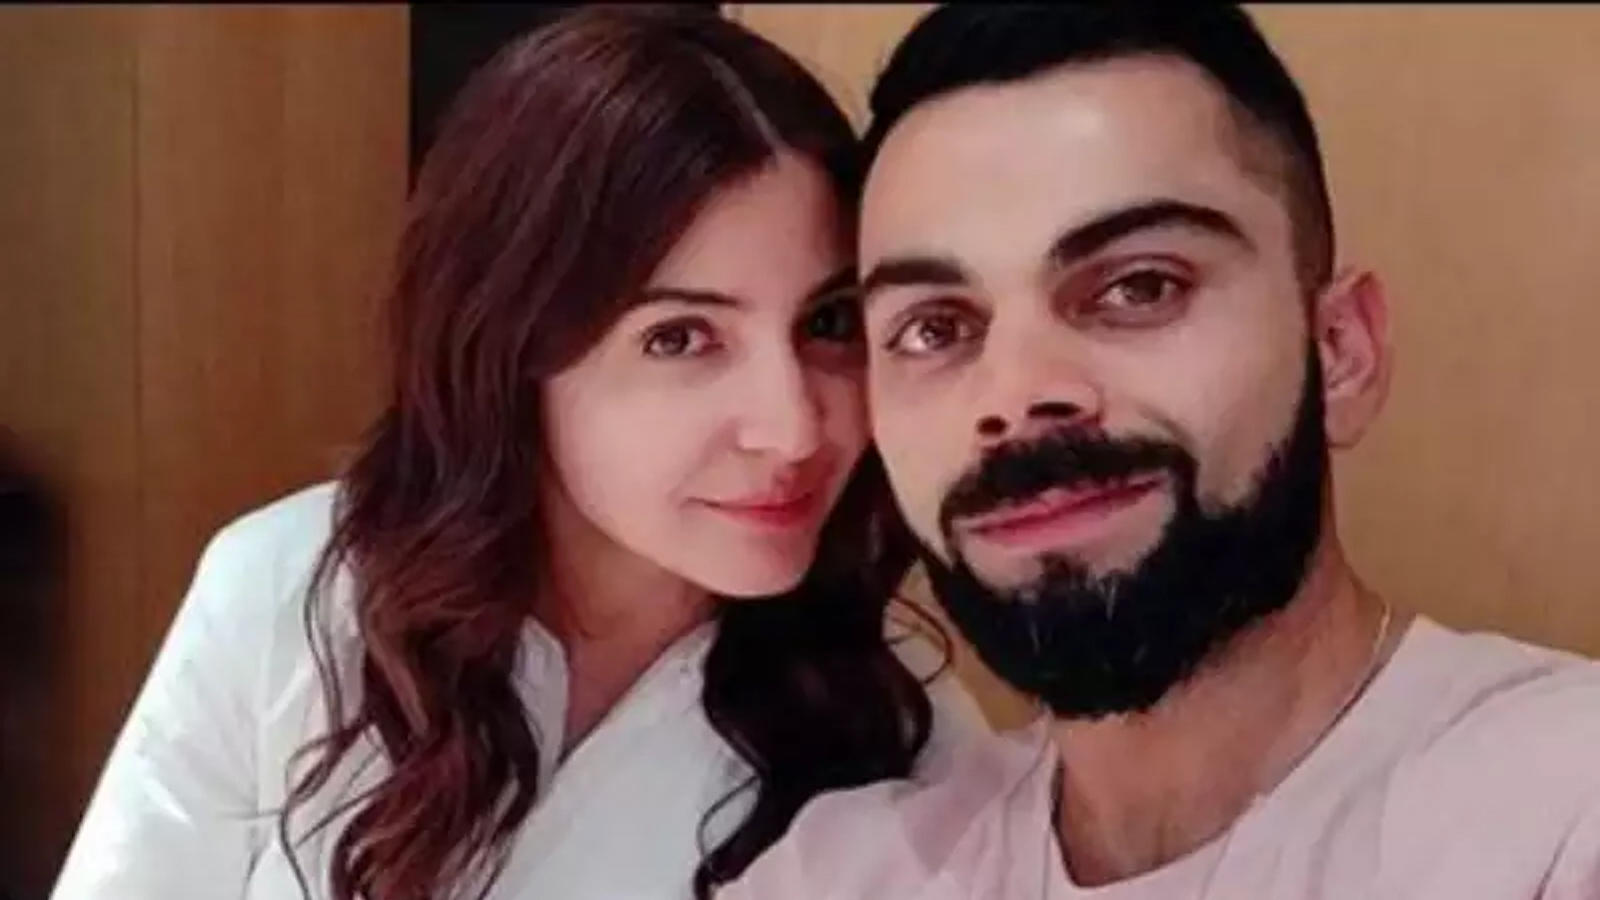 anushka-sharma-reveals-what-annoys-virat-kohli-the-most-also-says-who-keeps-asking-her-about-having-kids